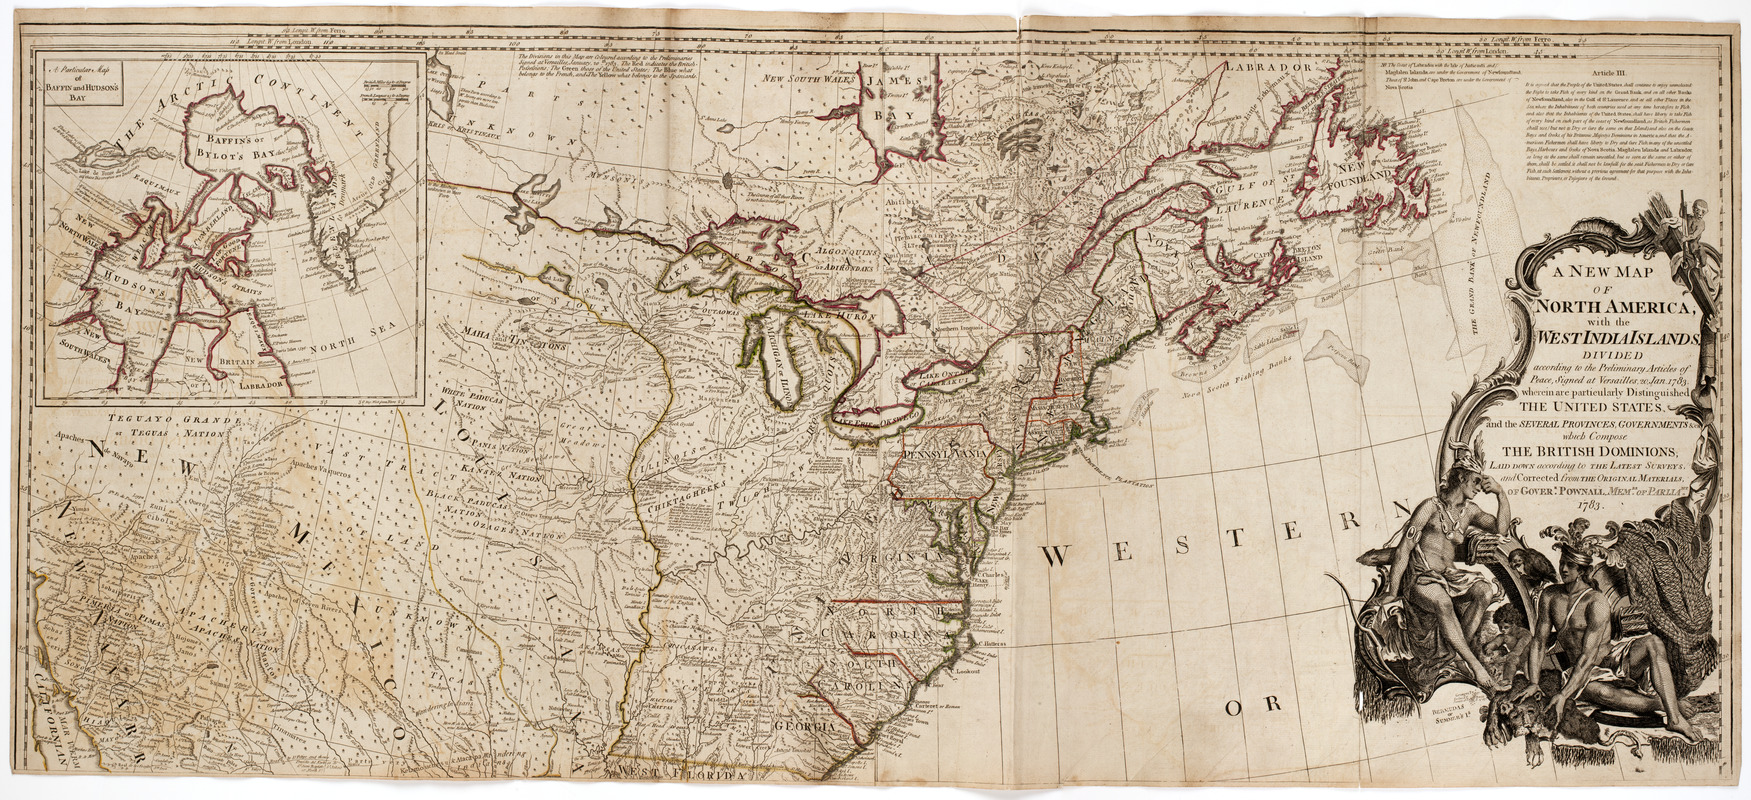 A New map of North America   Norman B  Leventhal Map   Education Center A New map of North America